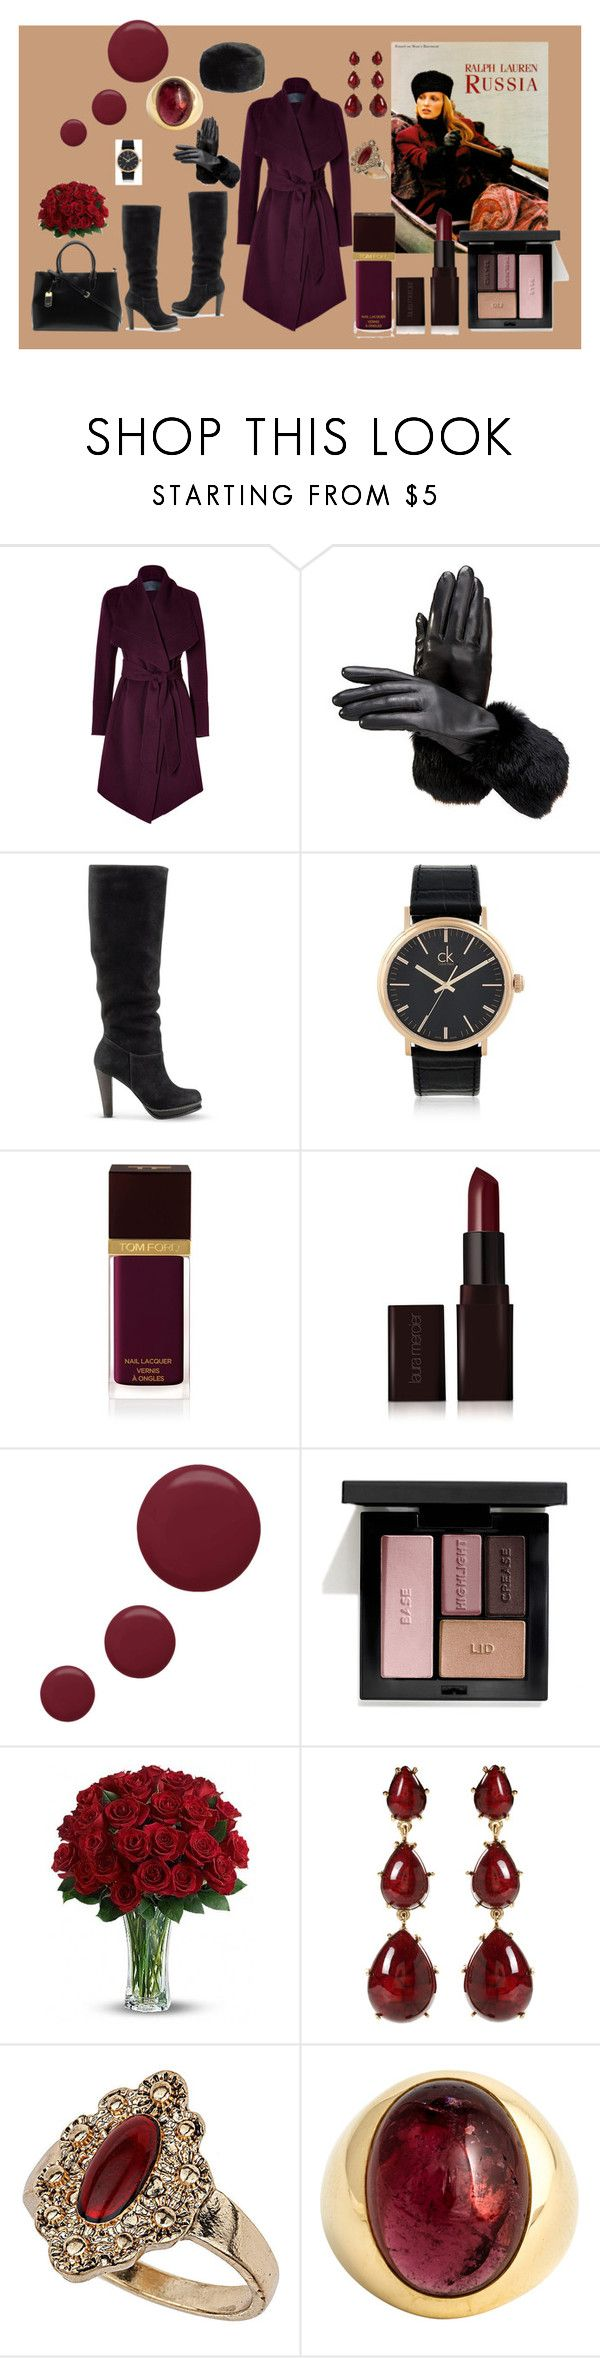 """Winter Wine"" by modernlady ❤ liked on Polyvore featuring Donna Karan, Aspinal of London, Cole Haan, Lauren Ralph Lauren, Calvin Klein, Ralph Lauren, Tom Ford, Laura Mercier, Topshop and Victoria's Secret"